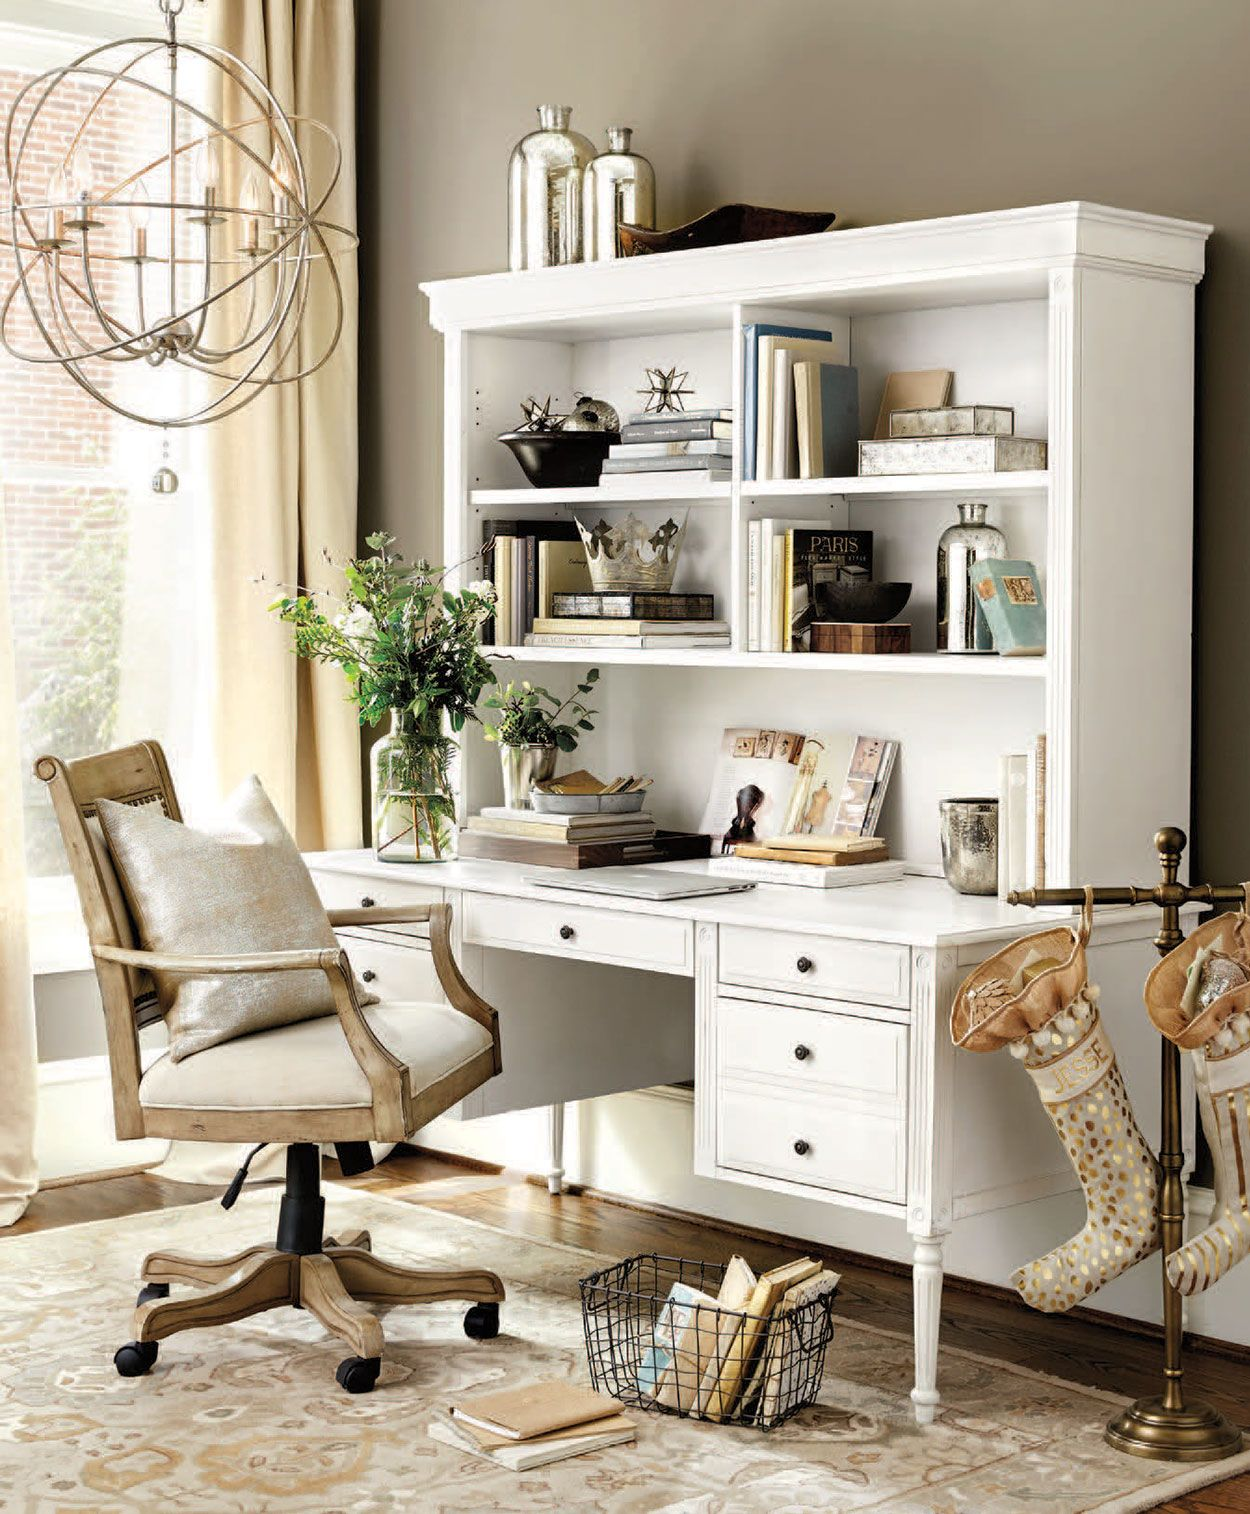 Home Decor Shop Design Ideas: Furniture, Home Office Furniture